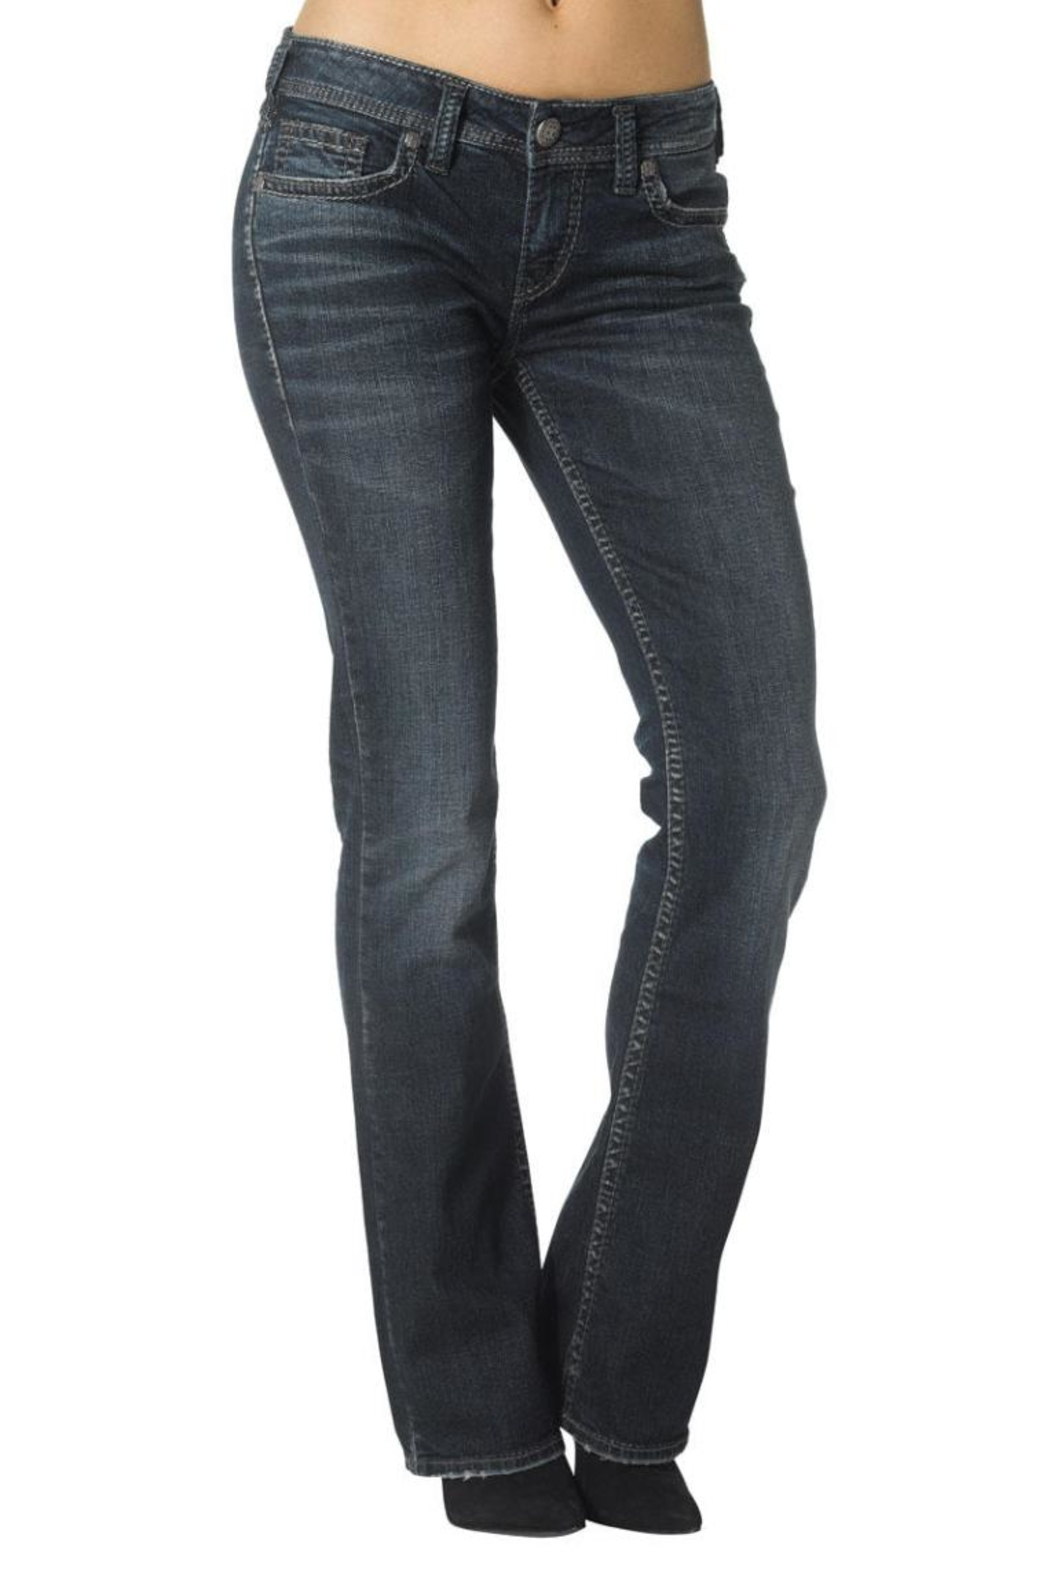 Silver Jeans Co. Aiko Defined-Curve Bootcut - Main Image